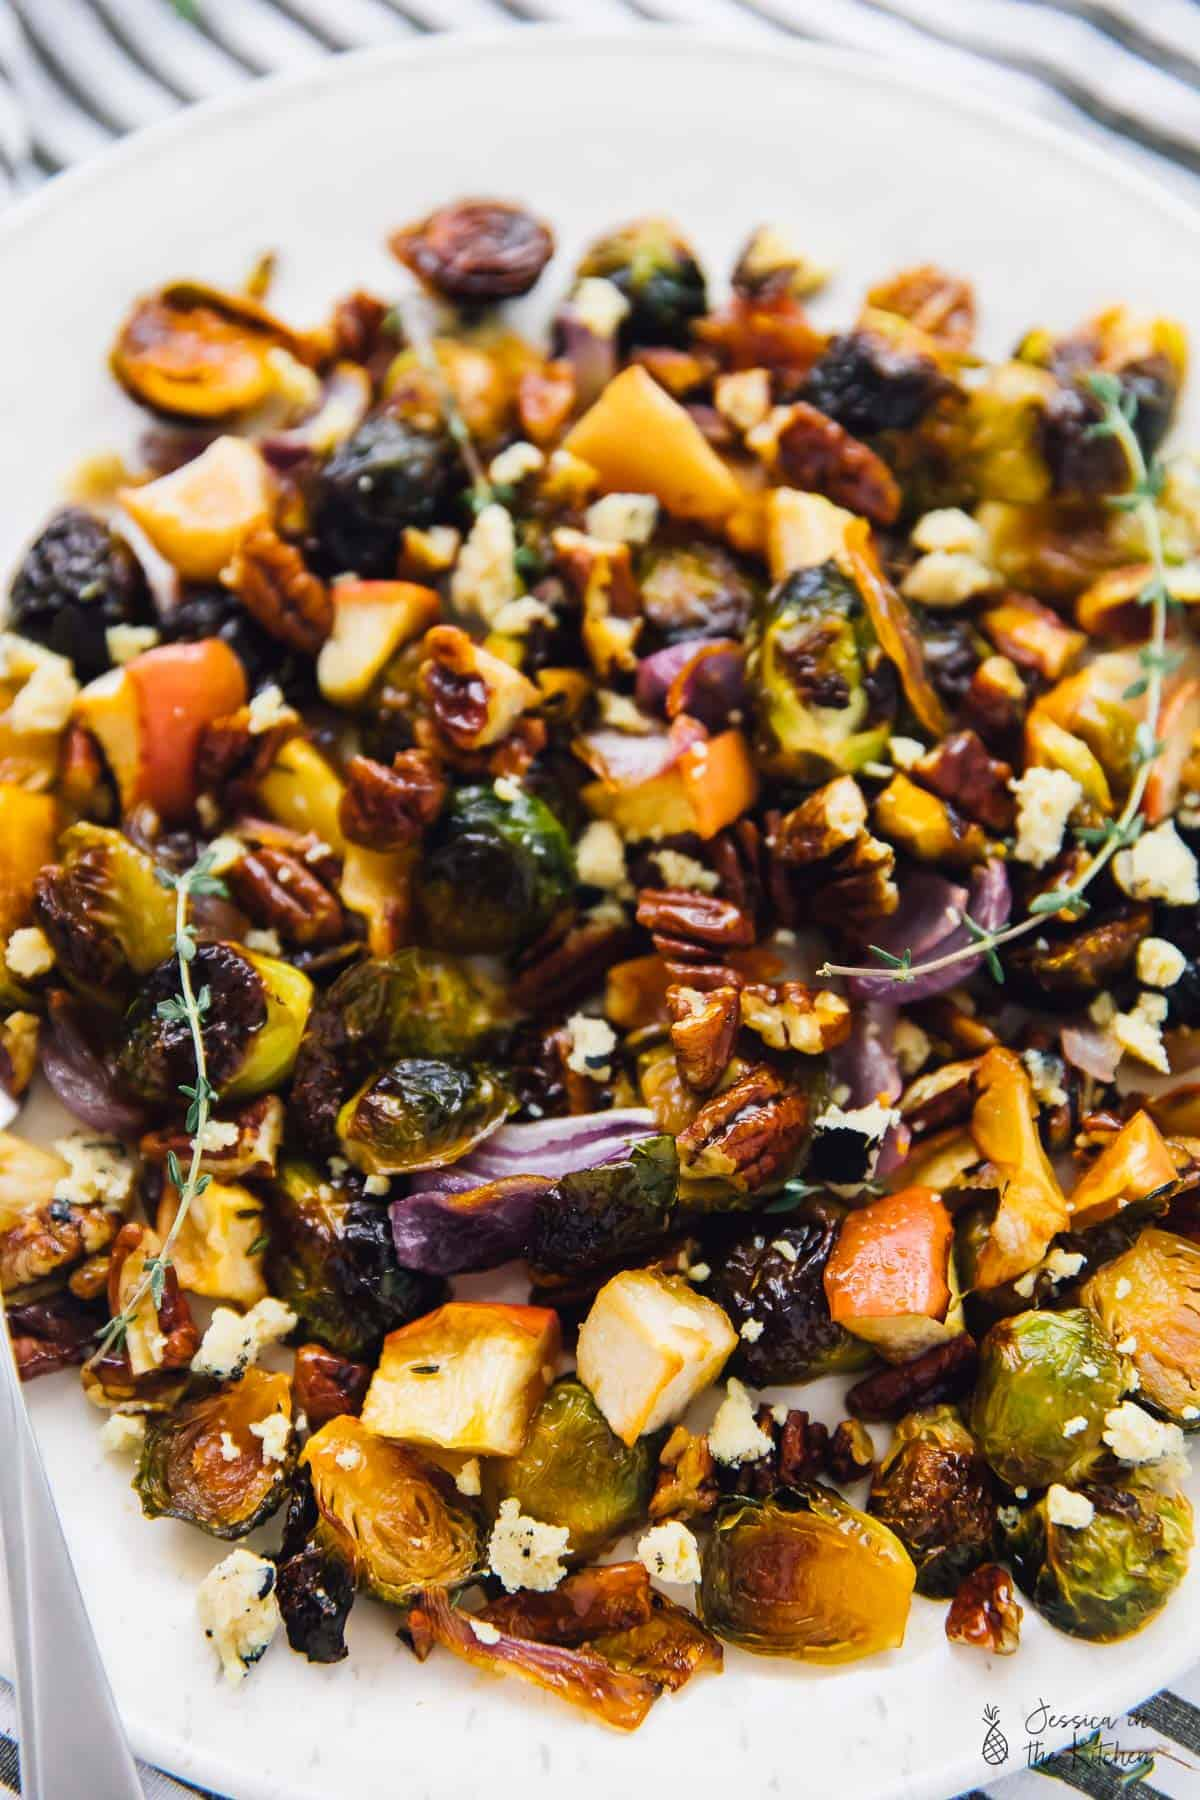 These Maple Roasted Brussels Sprouts with Apples and Pecans is perfect for any Thanksgiving or holiday side dish! The roasting brings out the amazing flavour of caramelised brussels sprouts, onions and apples and crispy pecans. via https://jessicainthekitchen.com